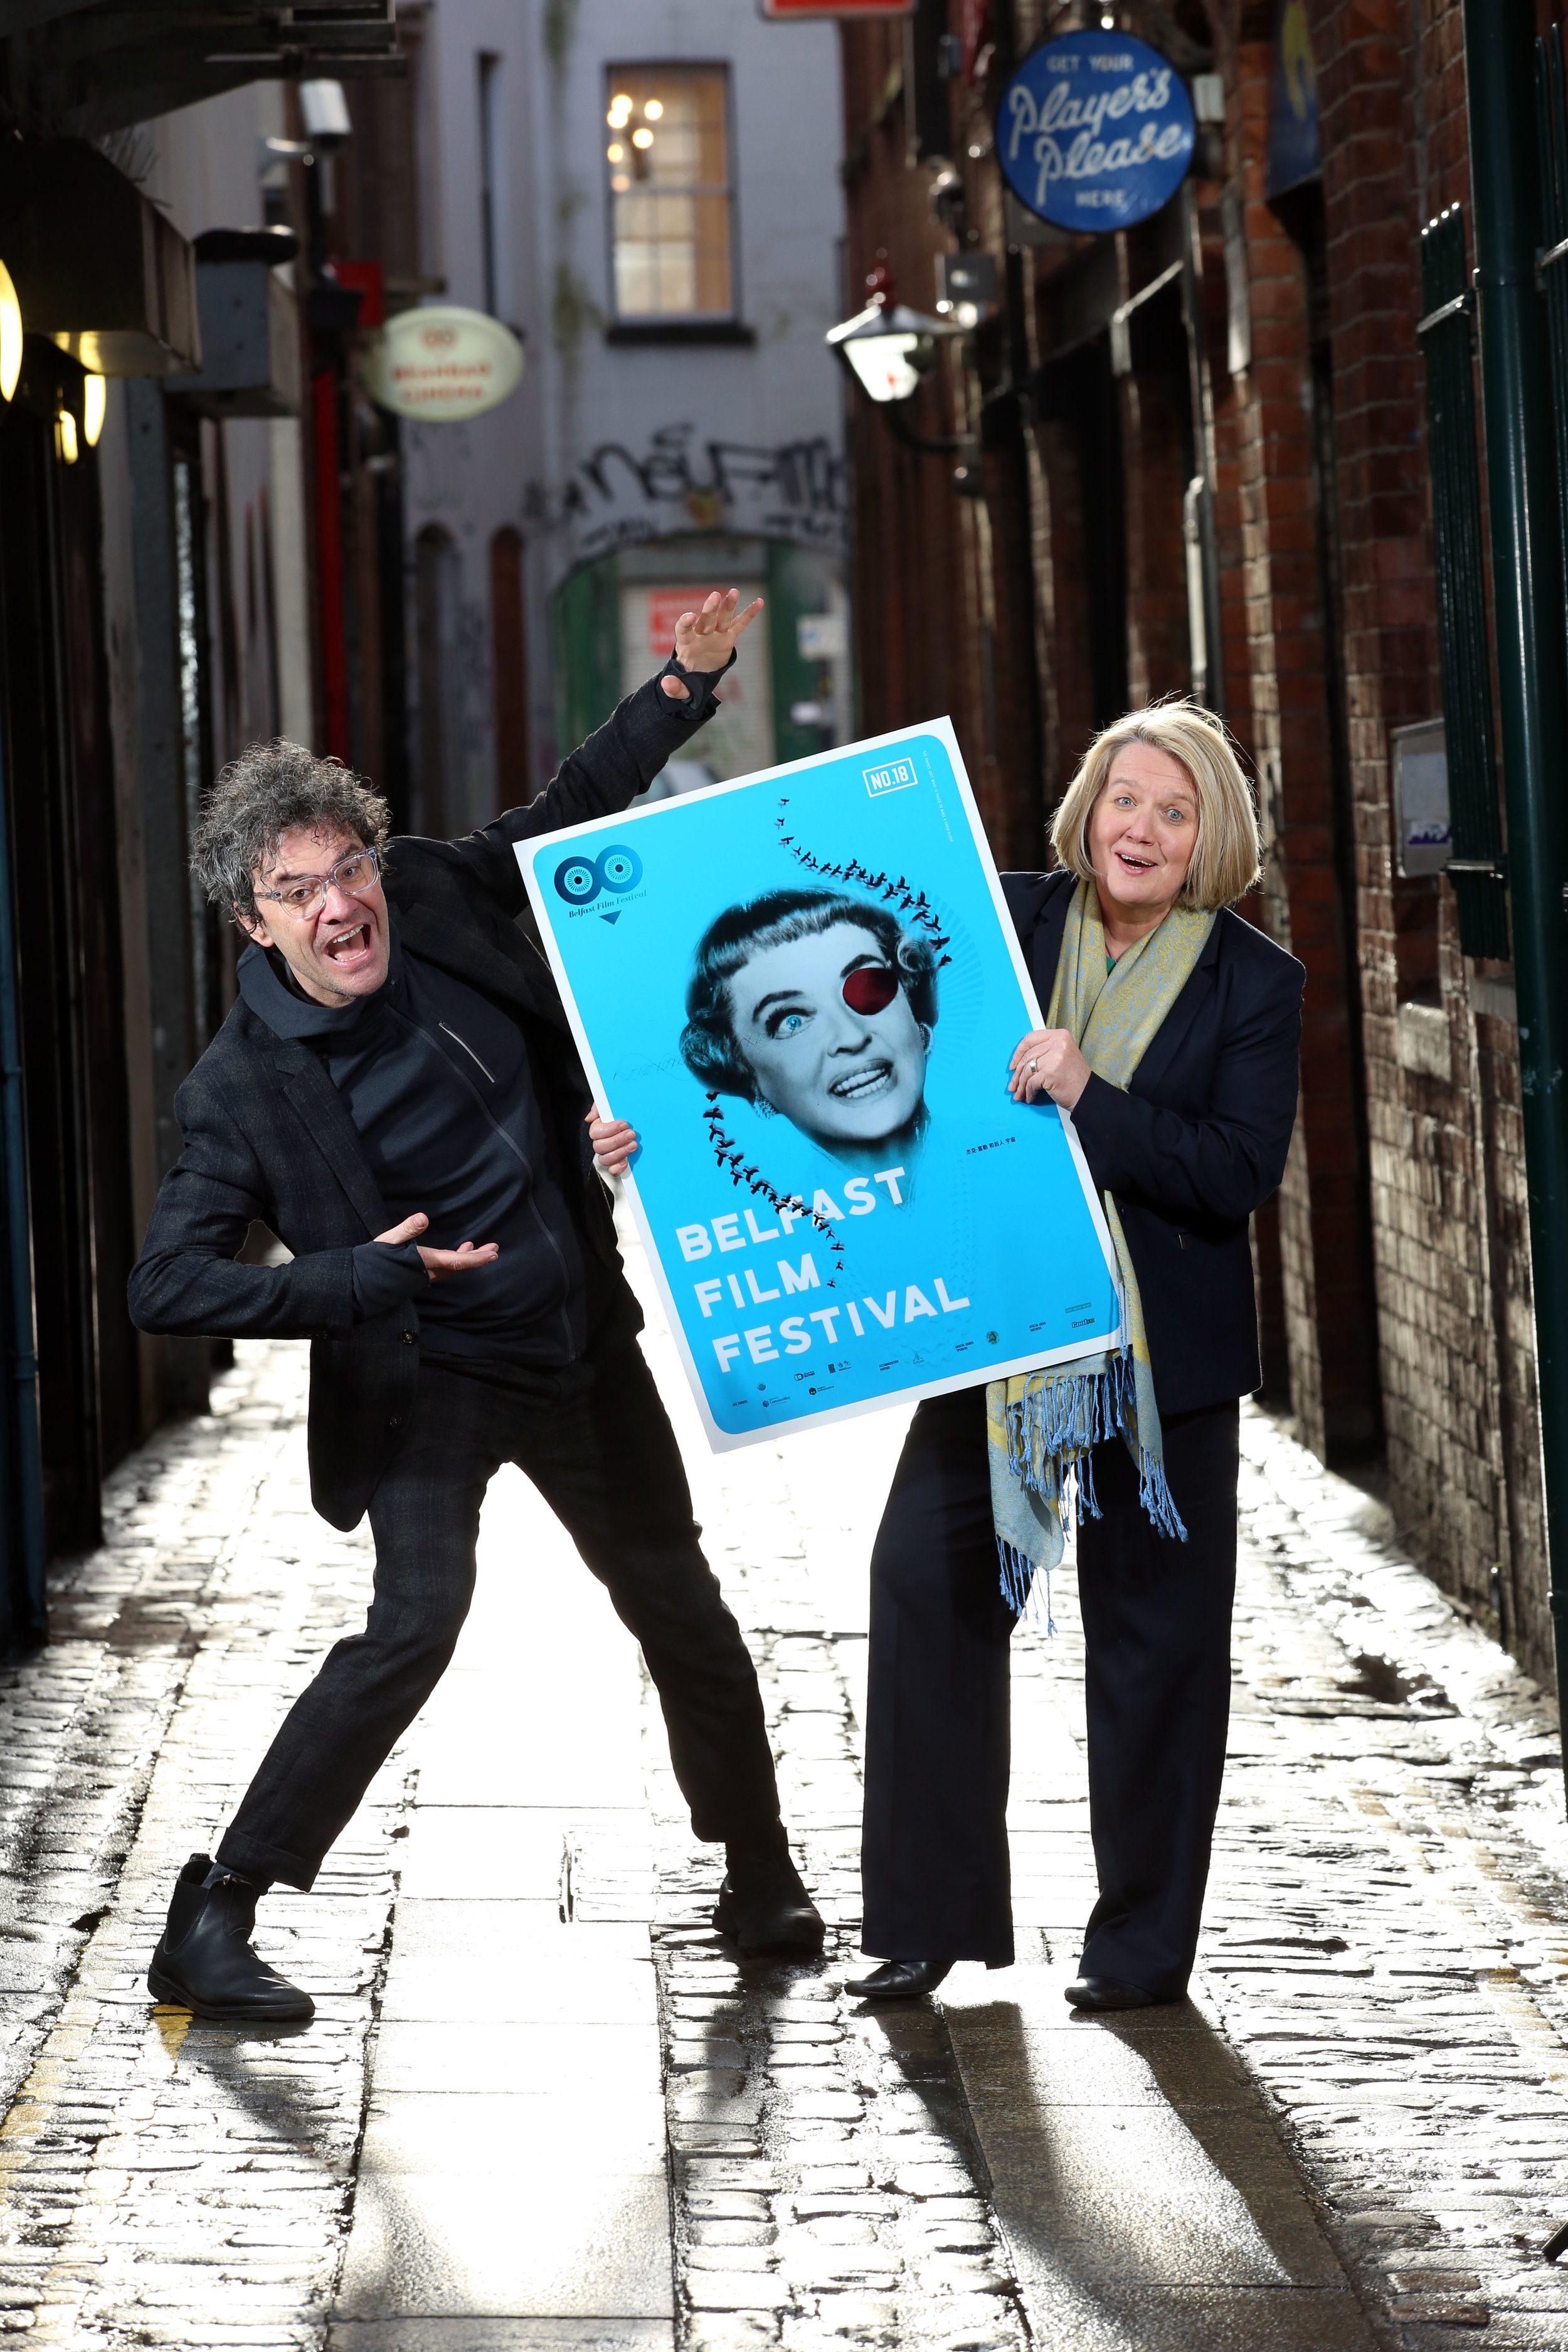 Chair of the Belfast Film Festival, Mark Cousins, with Director, Michele Devlin launch the 2018 Belfast Film Festival. The 2018 Belfast Film Festival is set to host 118 premieres out of 178 films ranging from features to short films to Virtual Reality (VR) titles drawn from 30 countries around the world.